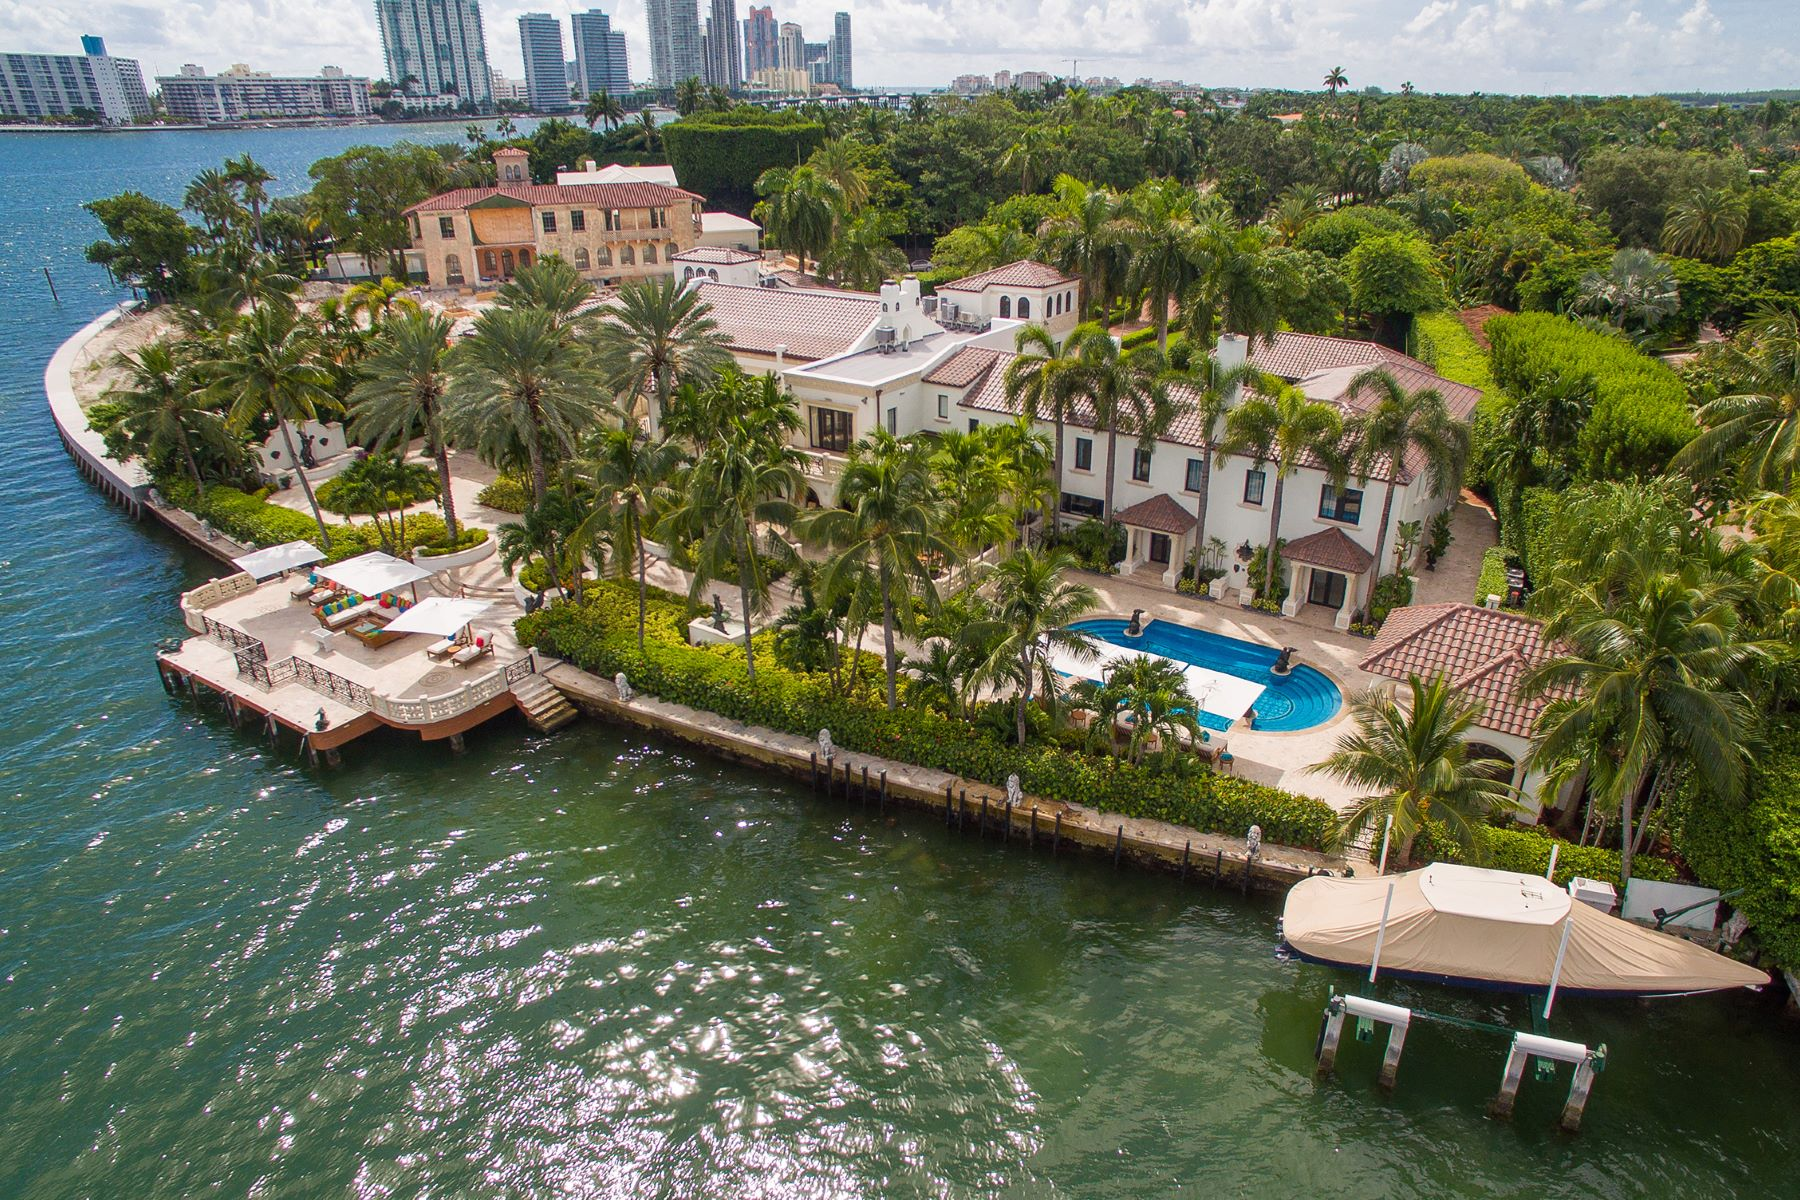 Single Family Home for Sale at 46 Star Island Drive 46 Star Island Drive Miami Beach, Florida 33139 United States